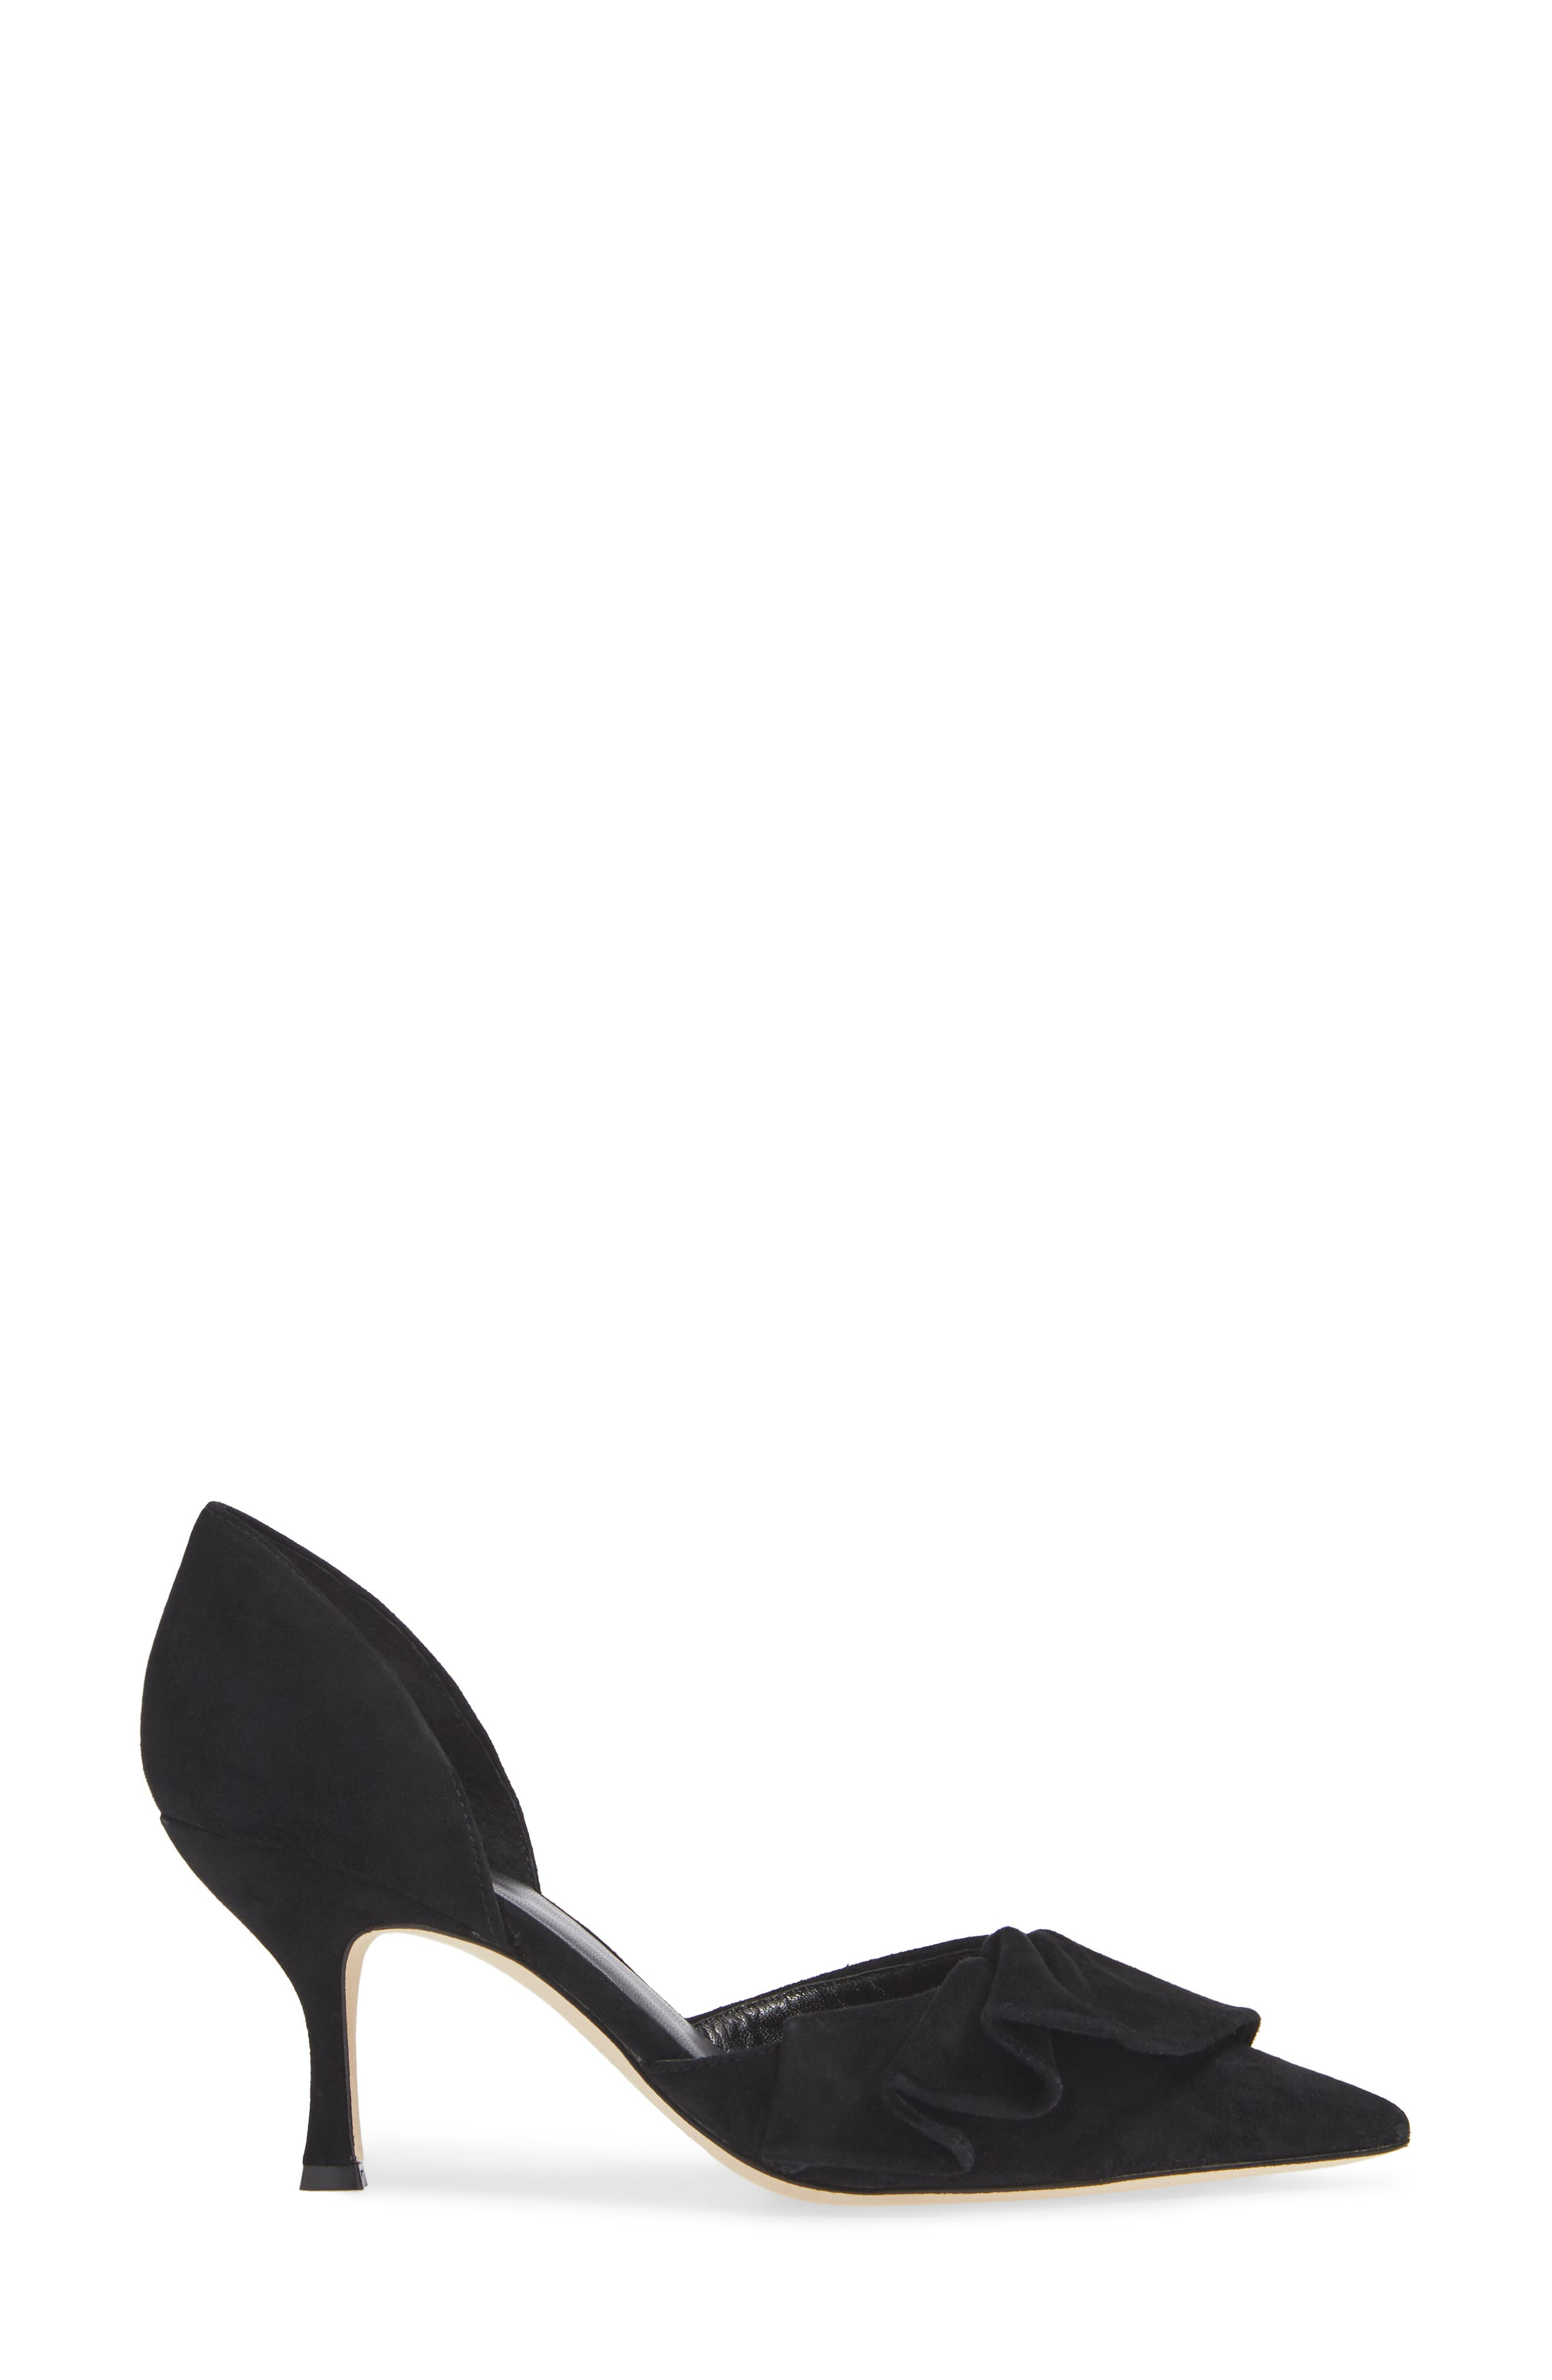 KATE SPADE NEW YORK,                             shayna d'orsay pump,                             Alternate thumbnail 3, color,                             006